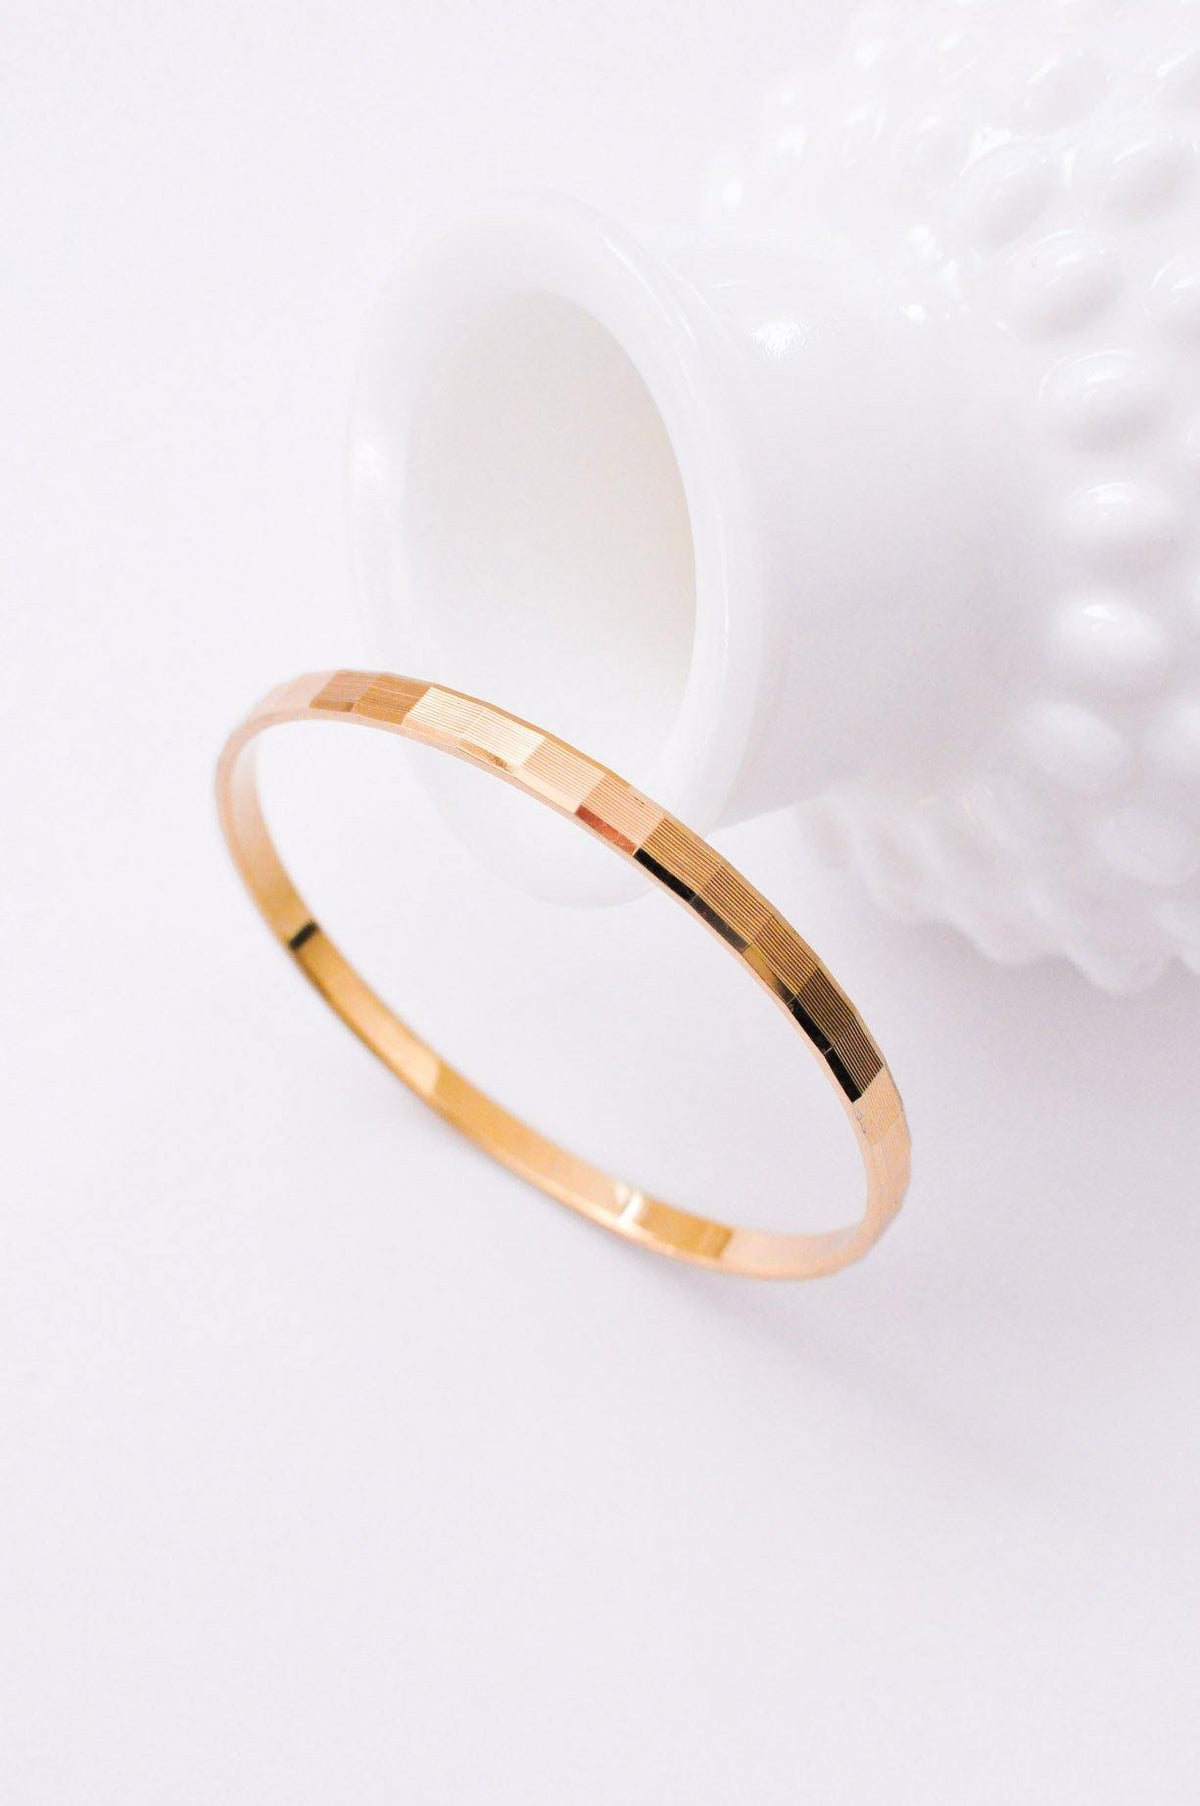 Thin Etched Bangle Bracelet by Monet from Sweet & Spark